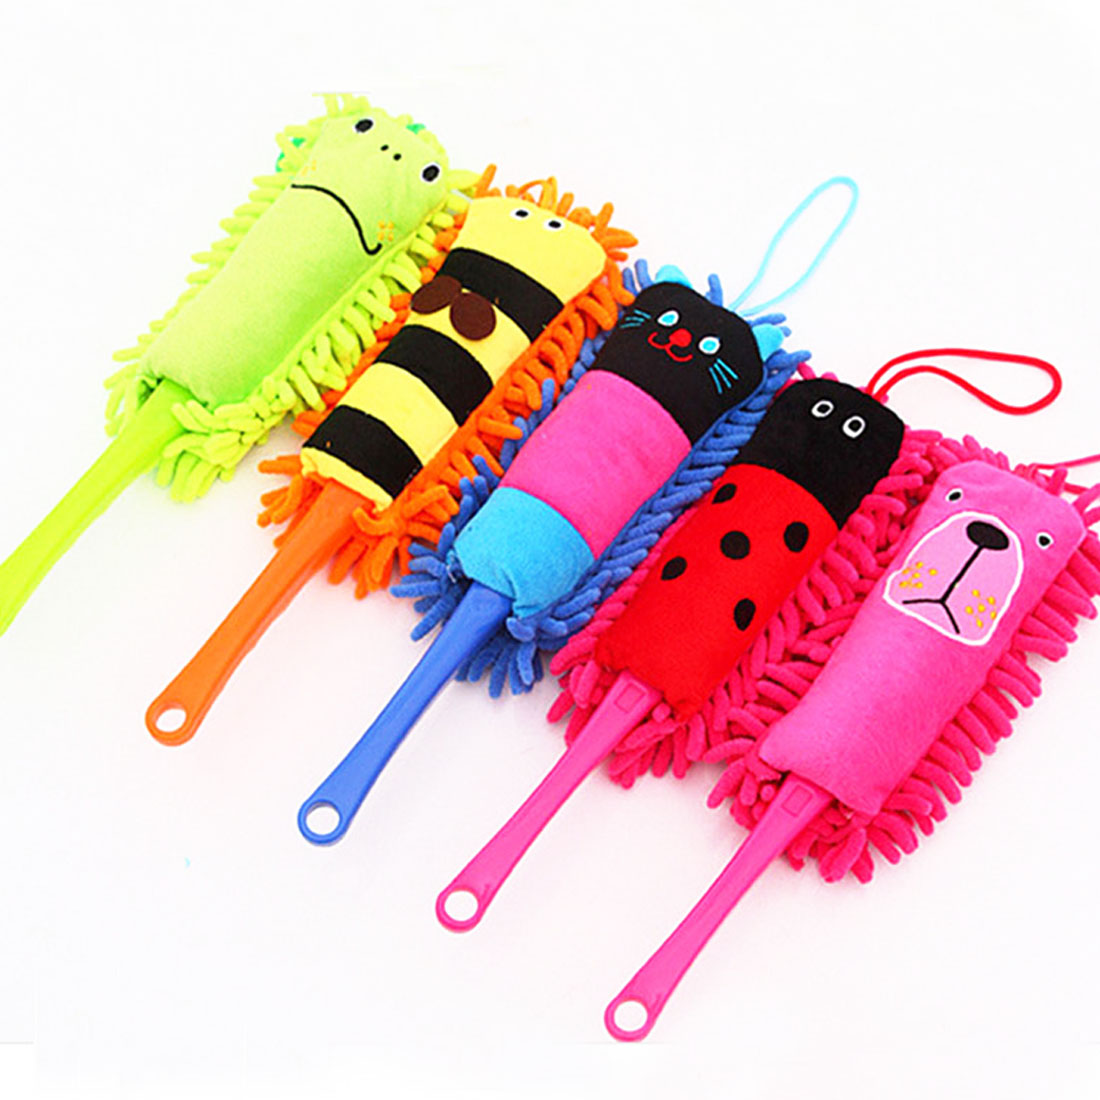 1 pcs Cartoon Animal Household Detachable Cleaning Brushes Dust Dusters for Cars Computers Furniture Electric Appliances(China (Mainland))